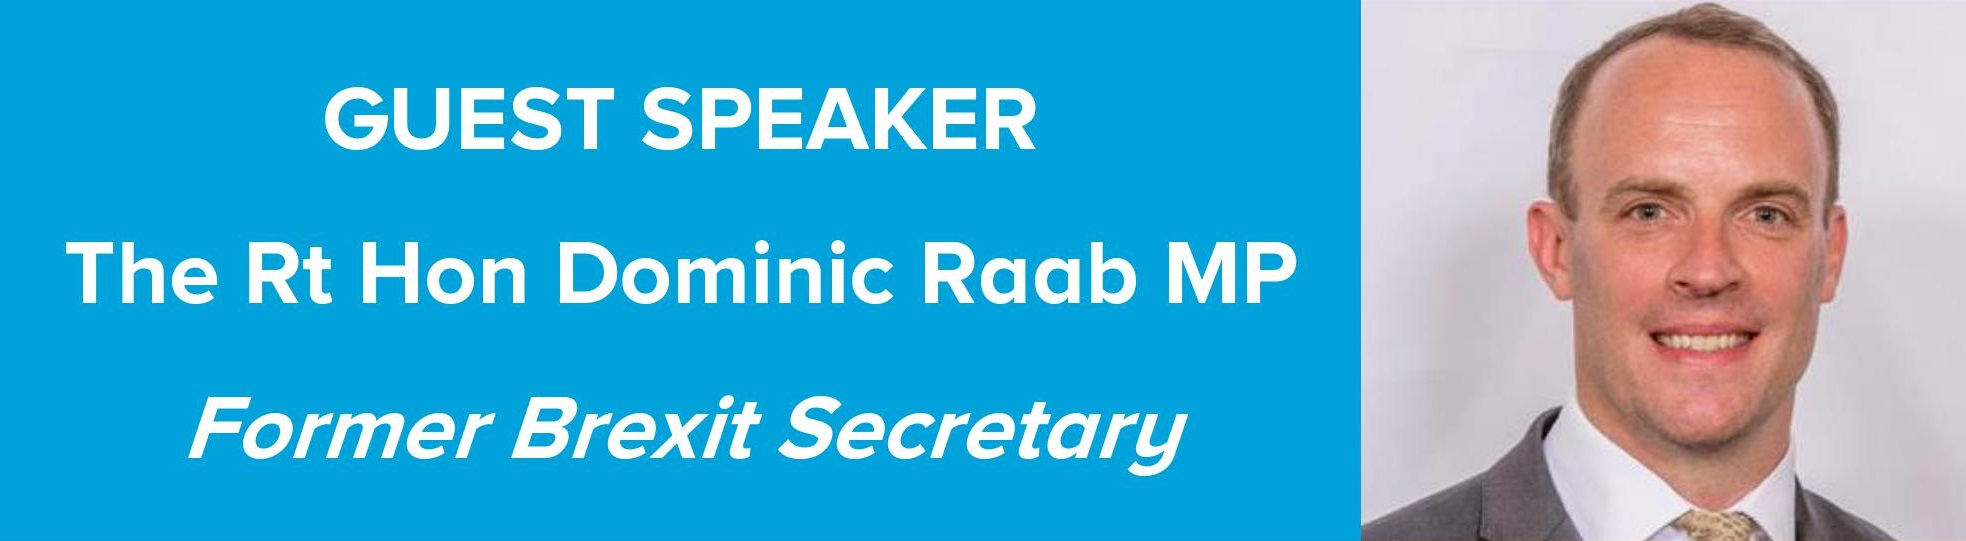 Summer Lunch with Dominic Raab MP